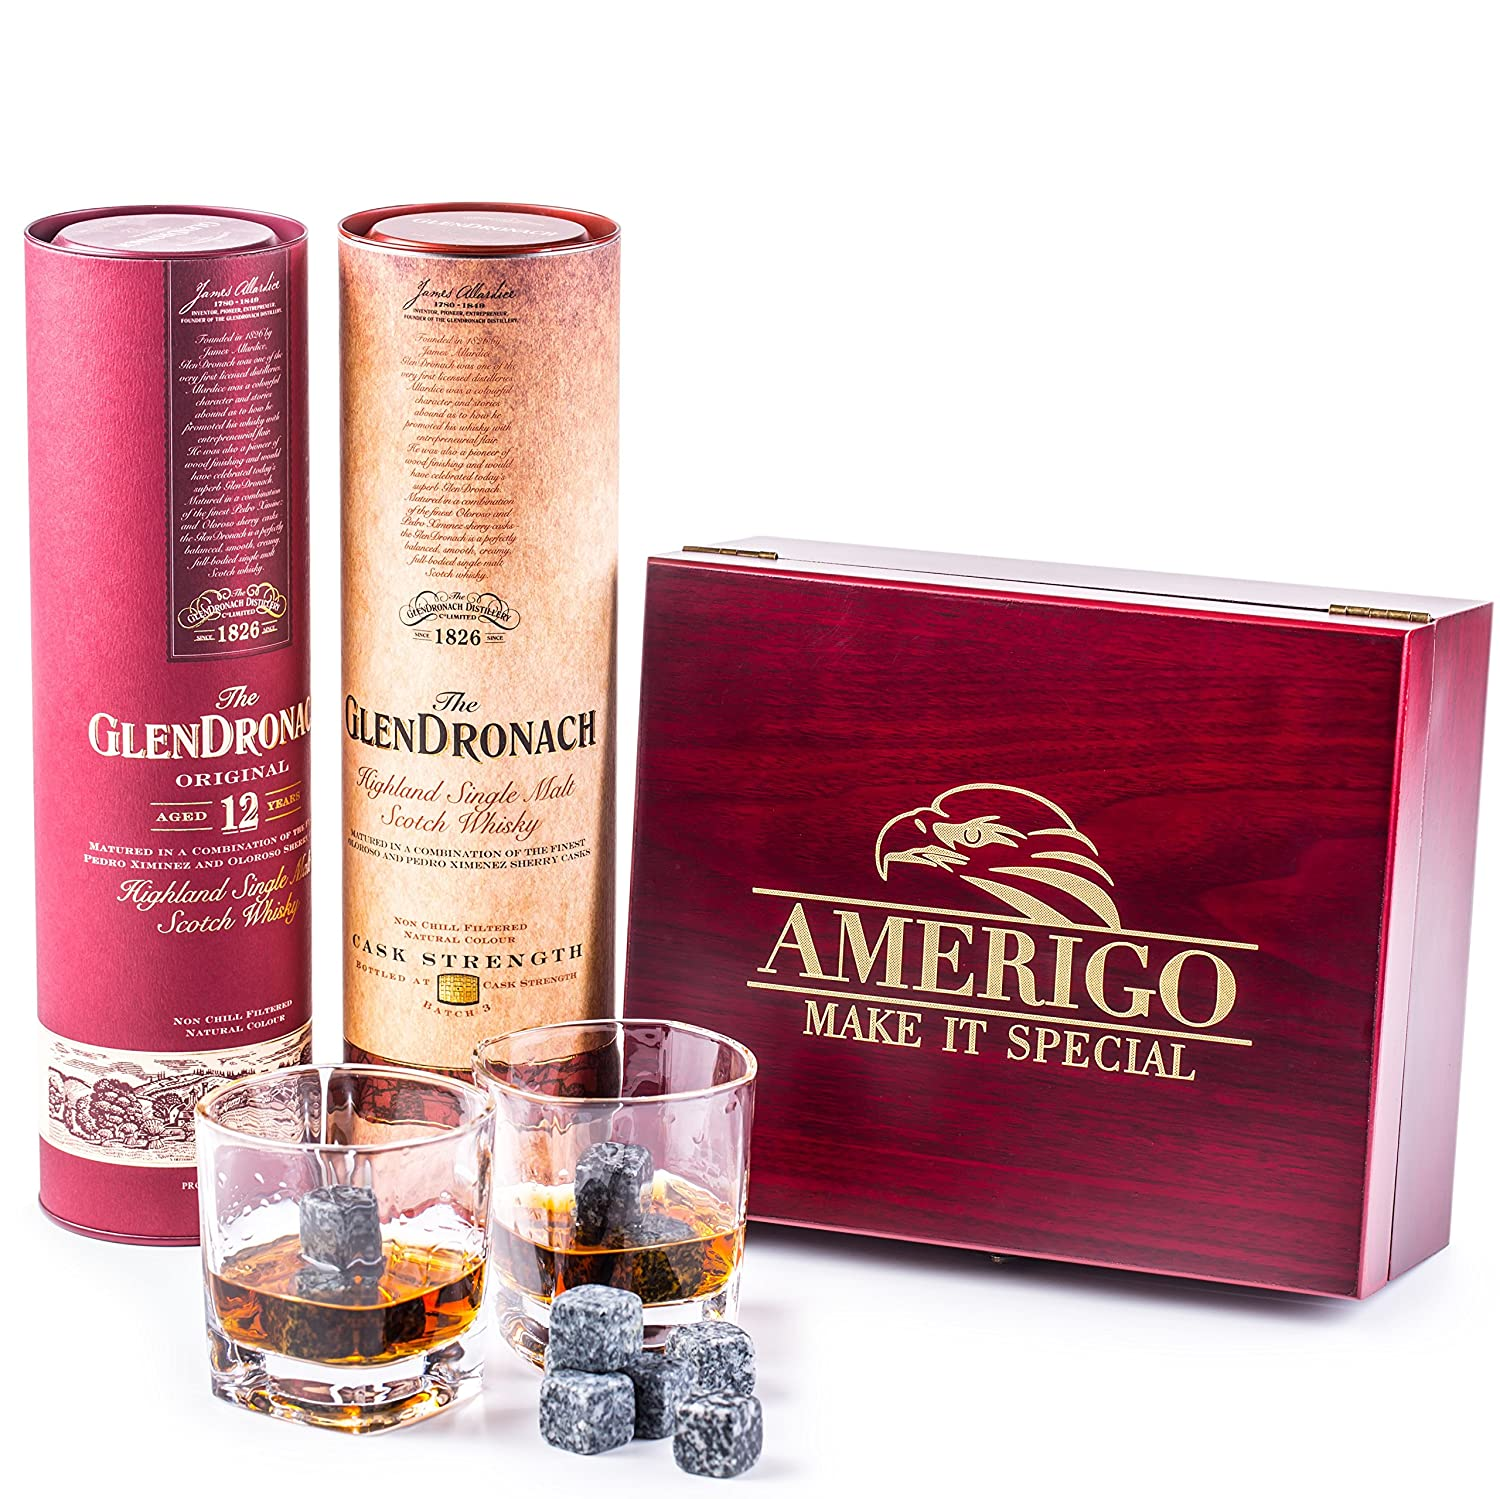 Impressive Whiskey Stones Gift Set with 2 Glasses - Be Different When Choosing a Gift - Luxury Handmade Box with 8 Granite Whiskey Rocks, Ice Tongs & Velvet Bag - Ice Cubes Reusable - Best Man Gift